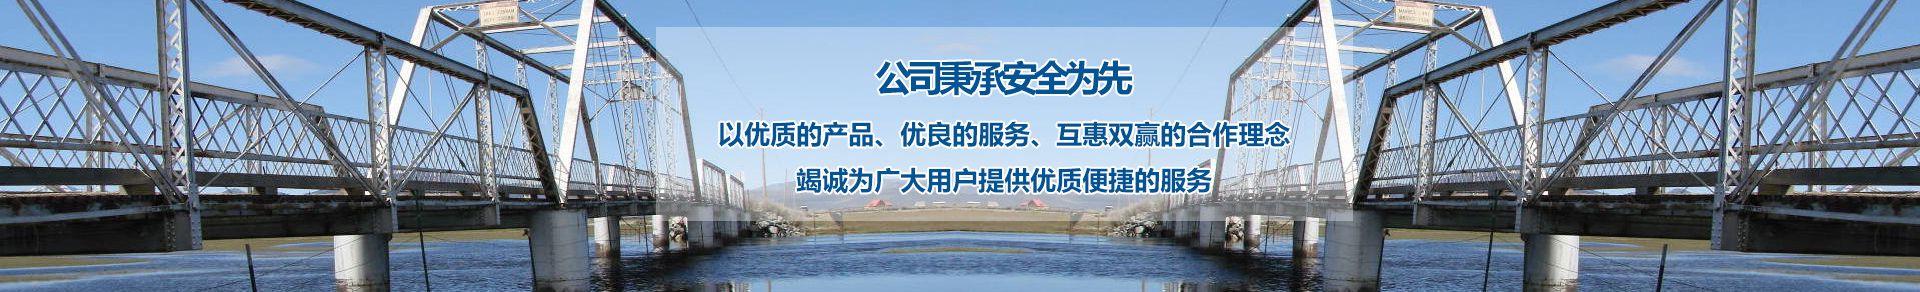 http://www.lzgjg.cn/data/images/slide/20190722174845_326.jpg